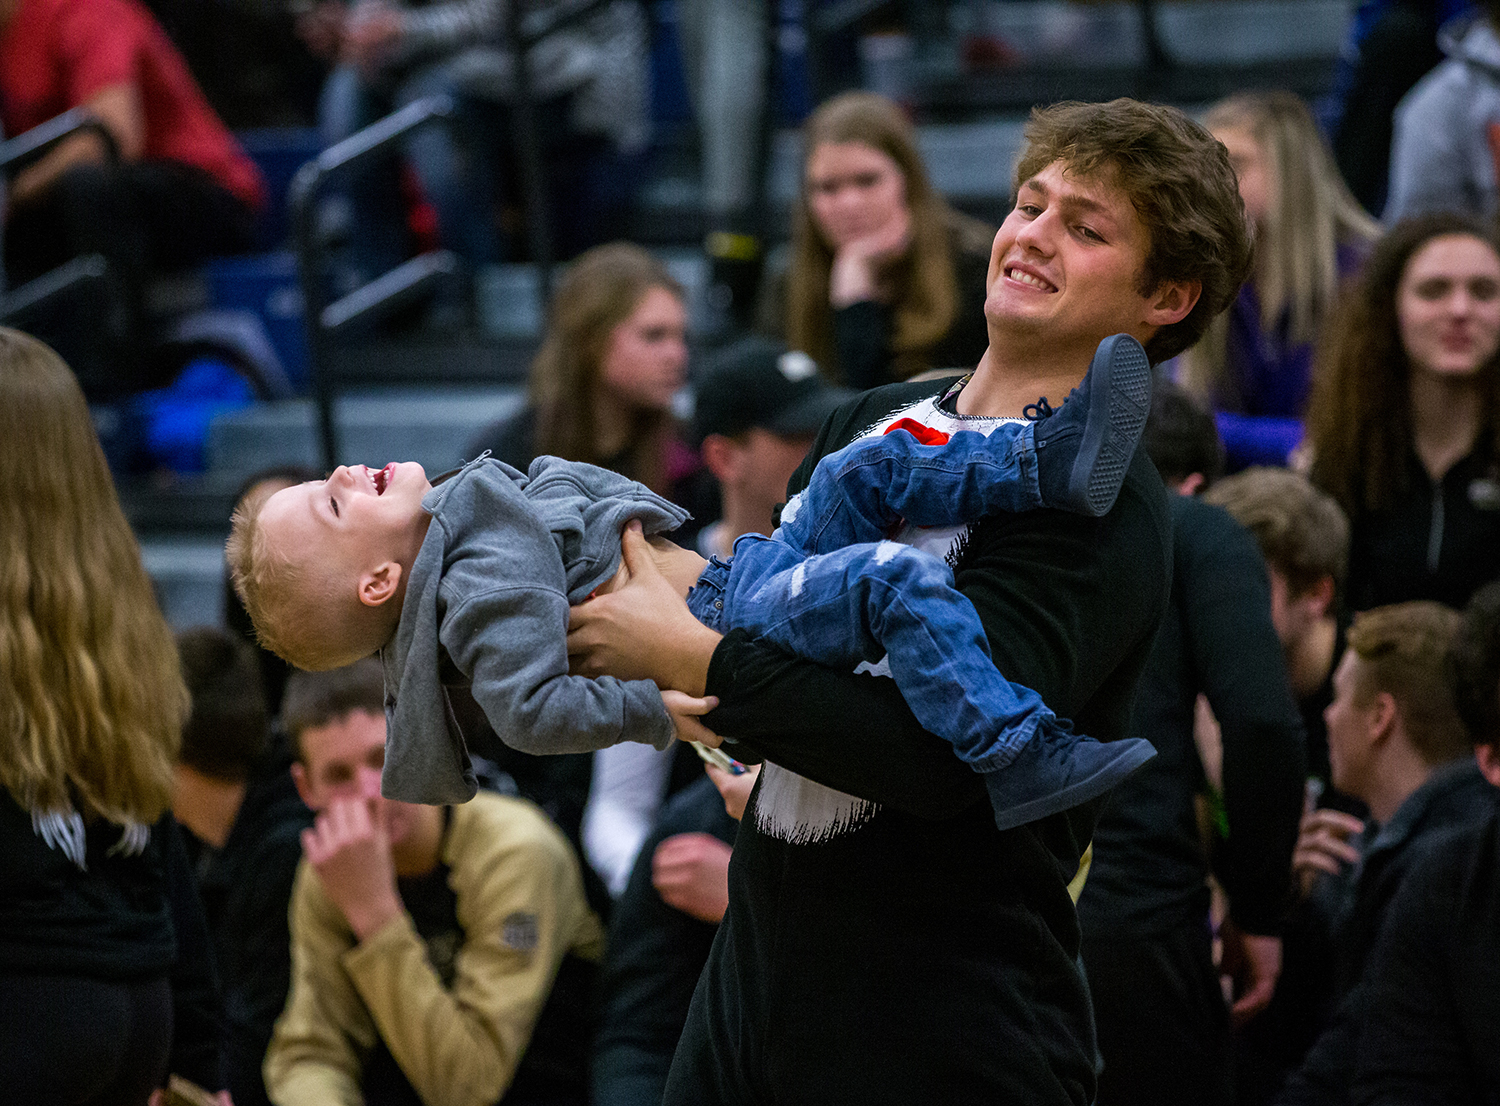 Sacred Heart-Griffin senior Matt Brenneisen spins his nephew, Jagger, 2, around in the air as he helps cheer on the Cyclones against Effingham in the second half during the Class 3A Springfield Supersectional at UIS' The Recreation and Athletic Center, Monday, Feb. 25, 2019, in Springfield, Ill. [Justin L. Fowler/The State Journal-Register]